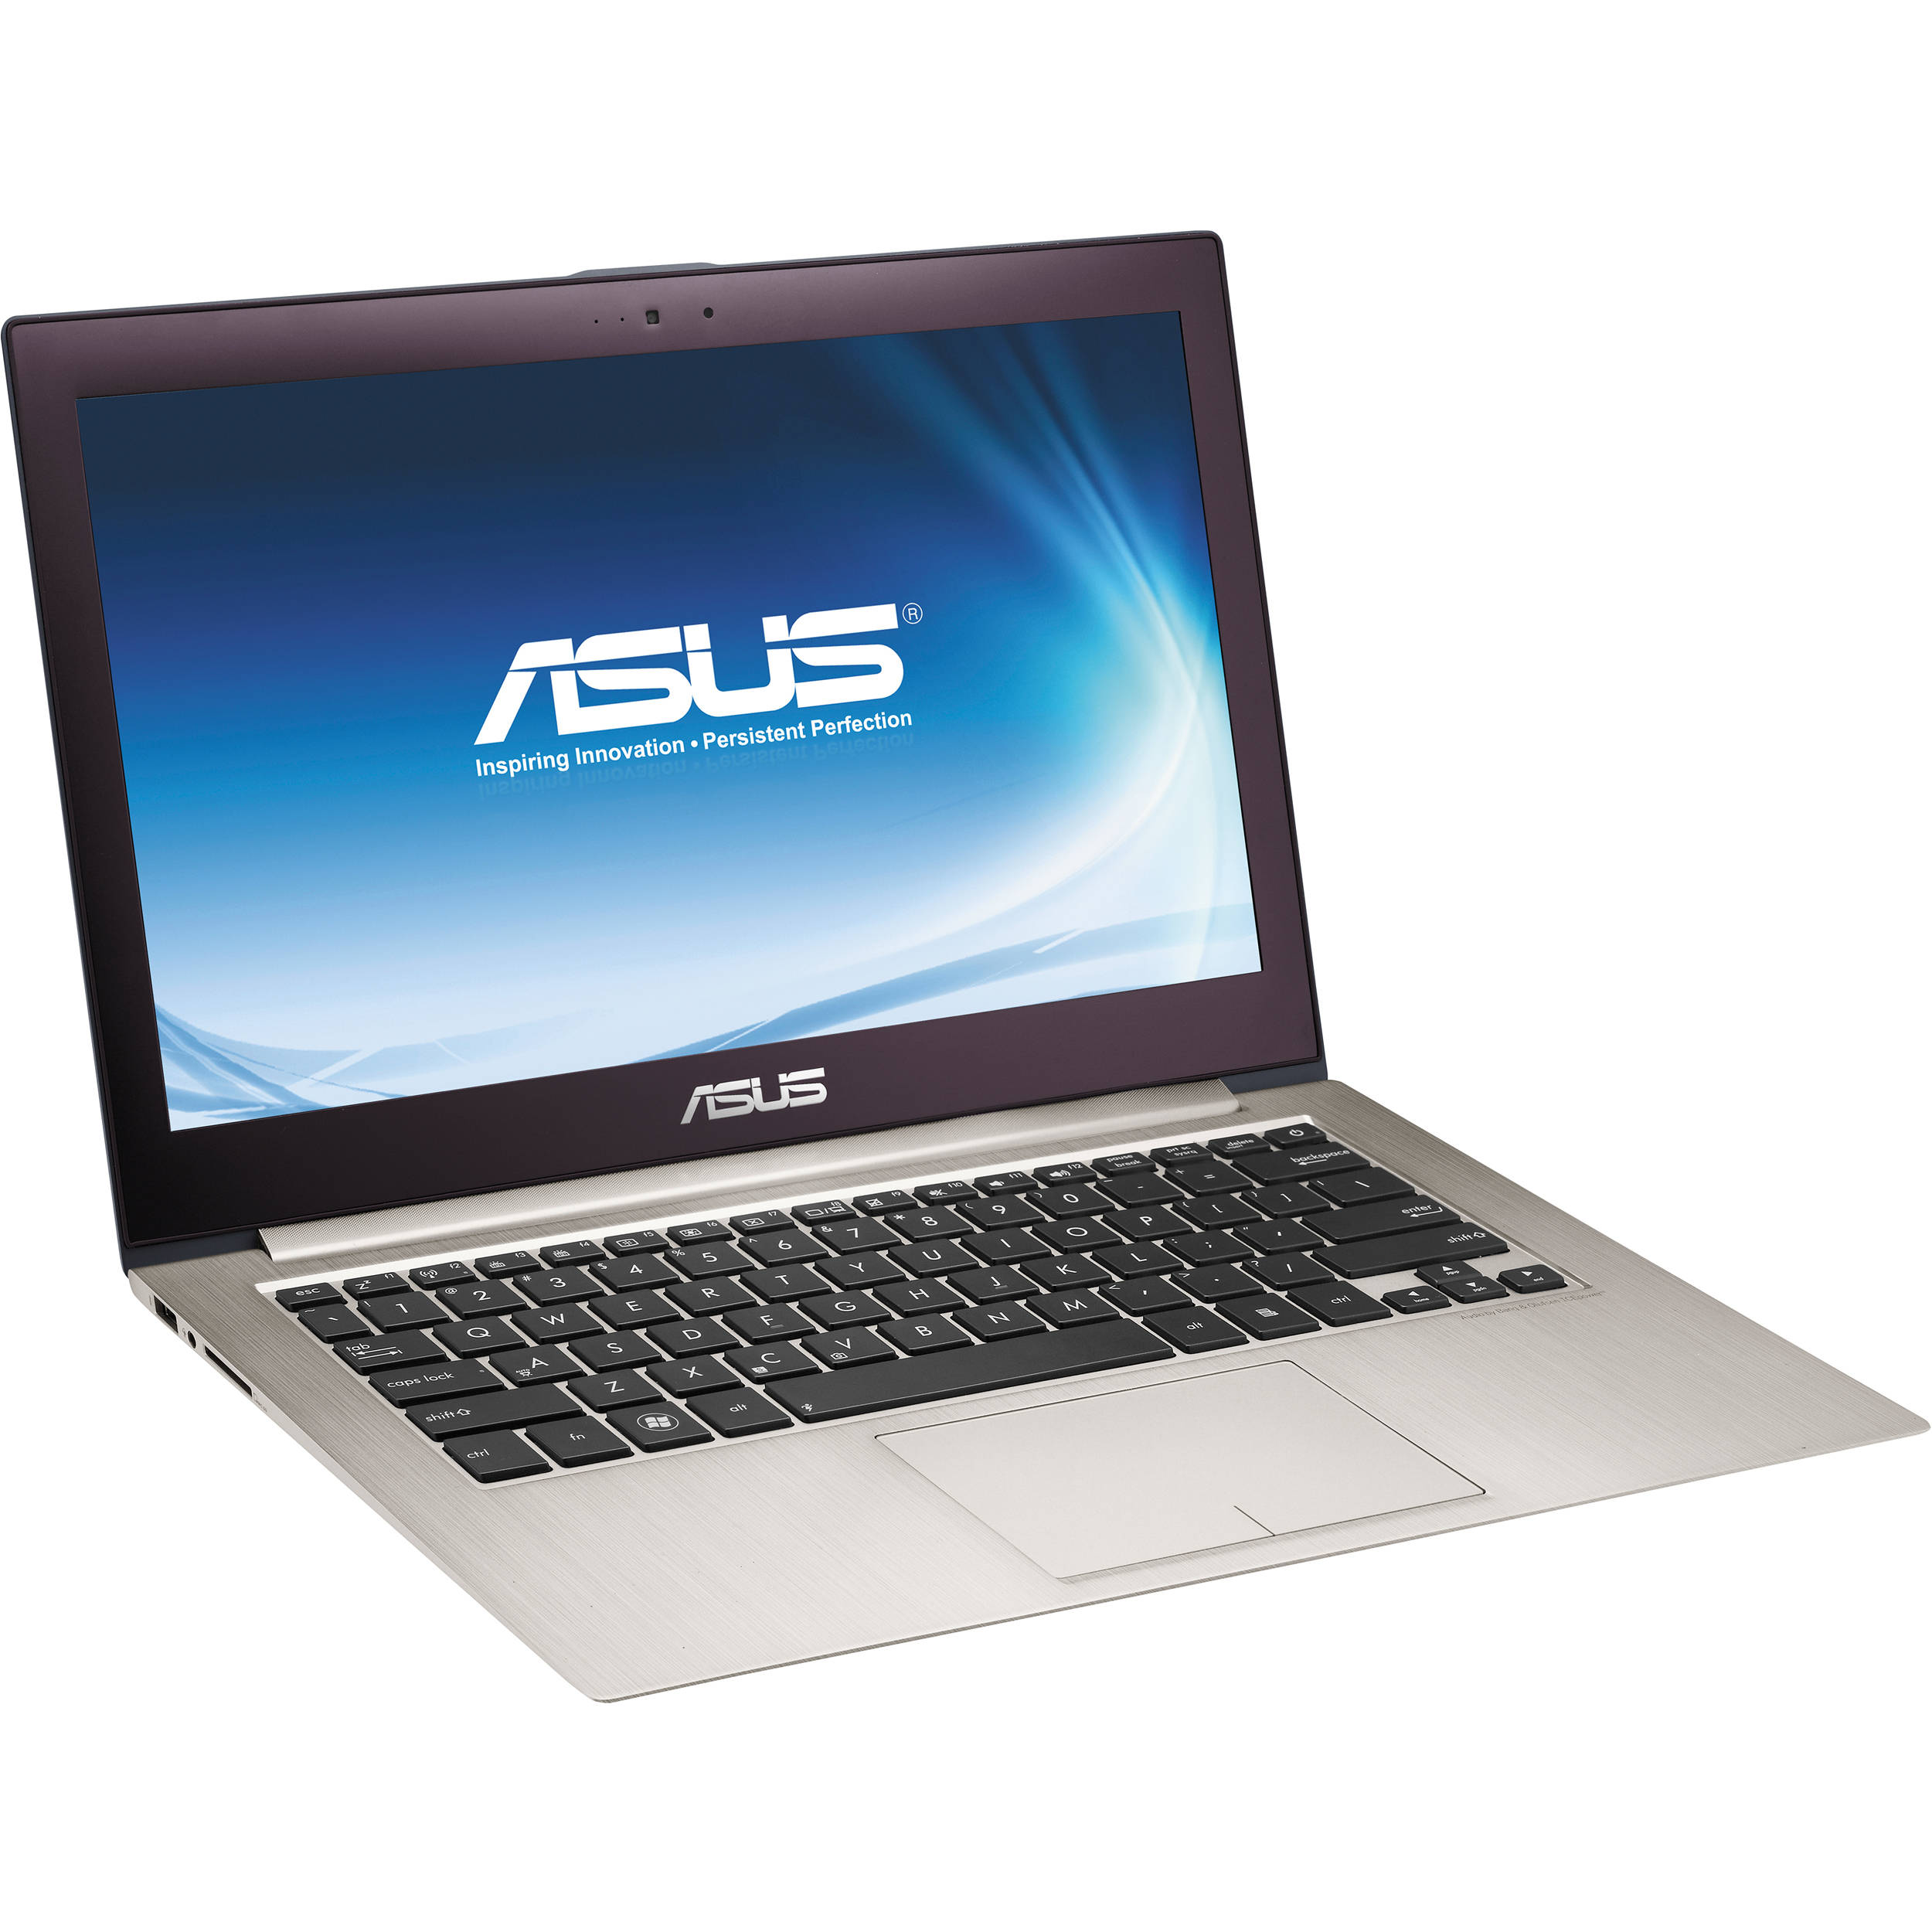 ASUS ZENBOOK PRIME UX31A BLUETOOTH DRIVER DOWNLOAD